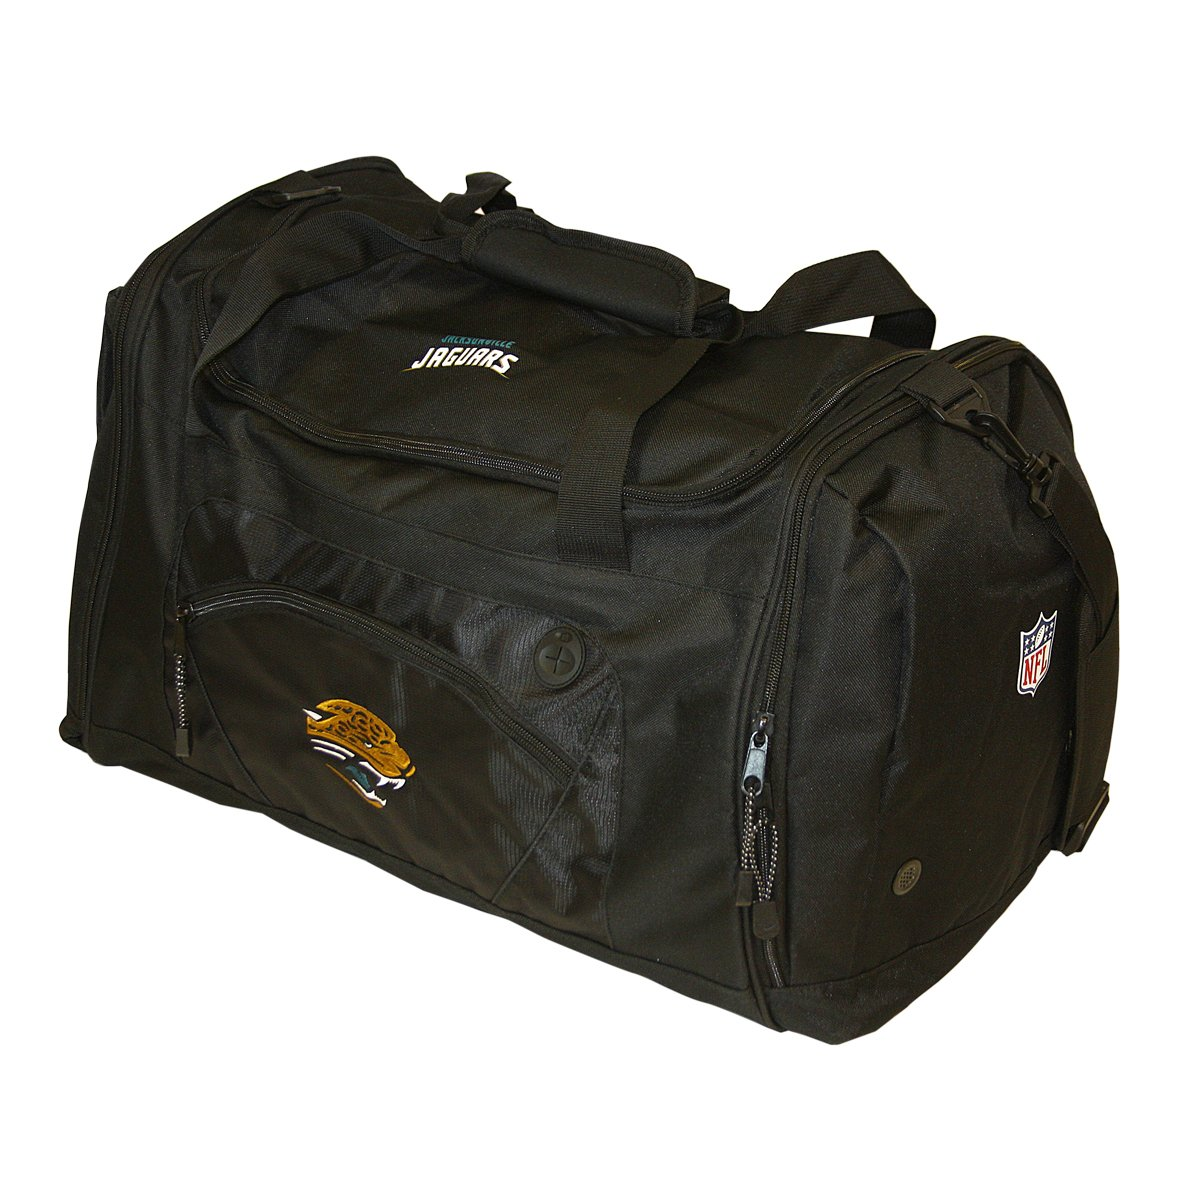 The Northwest Company Officially Licensed NFL Jacksonville Jaguars Roadblock Duffle